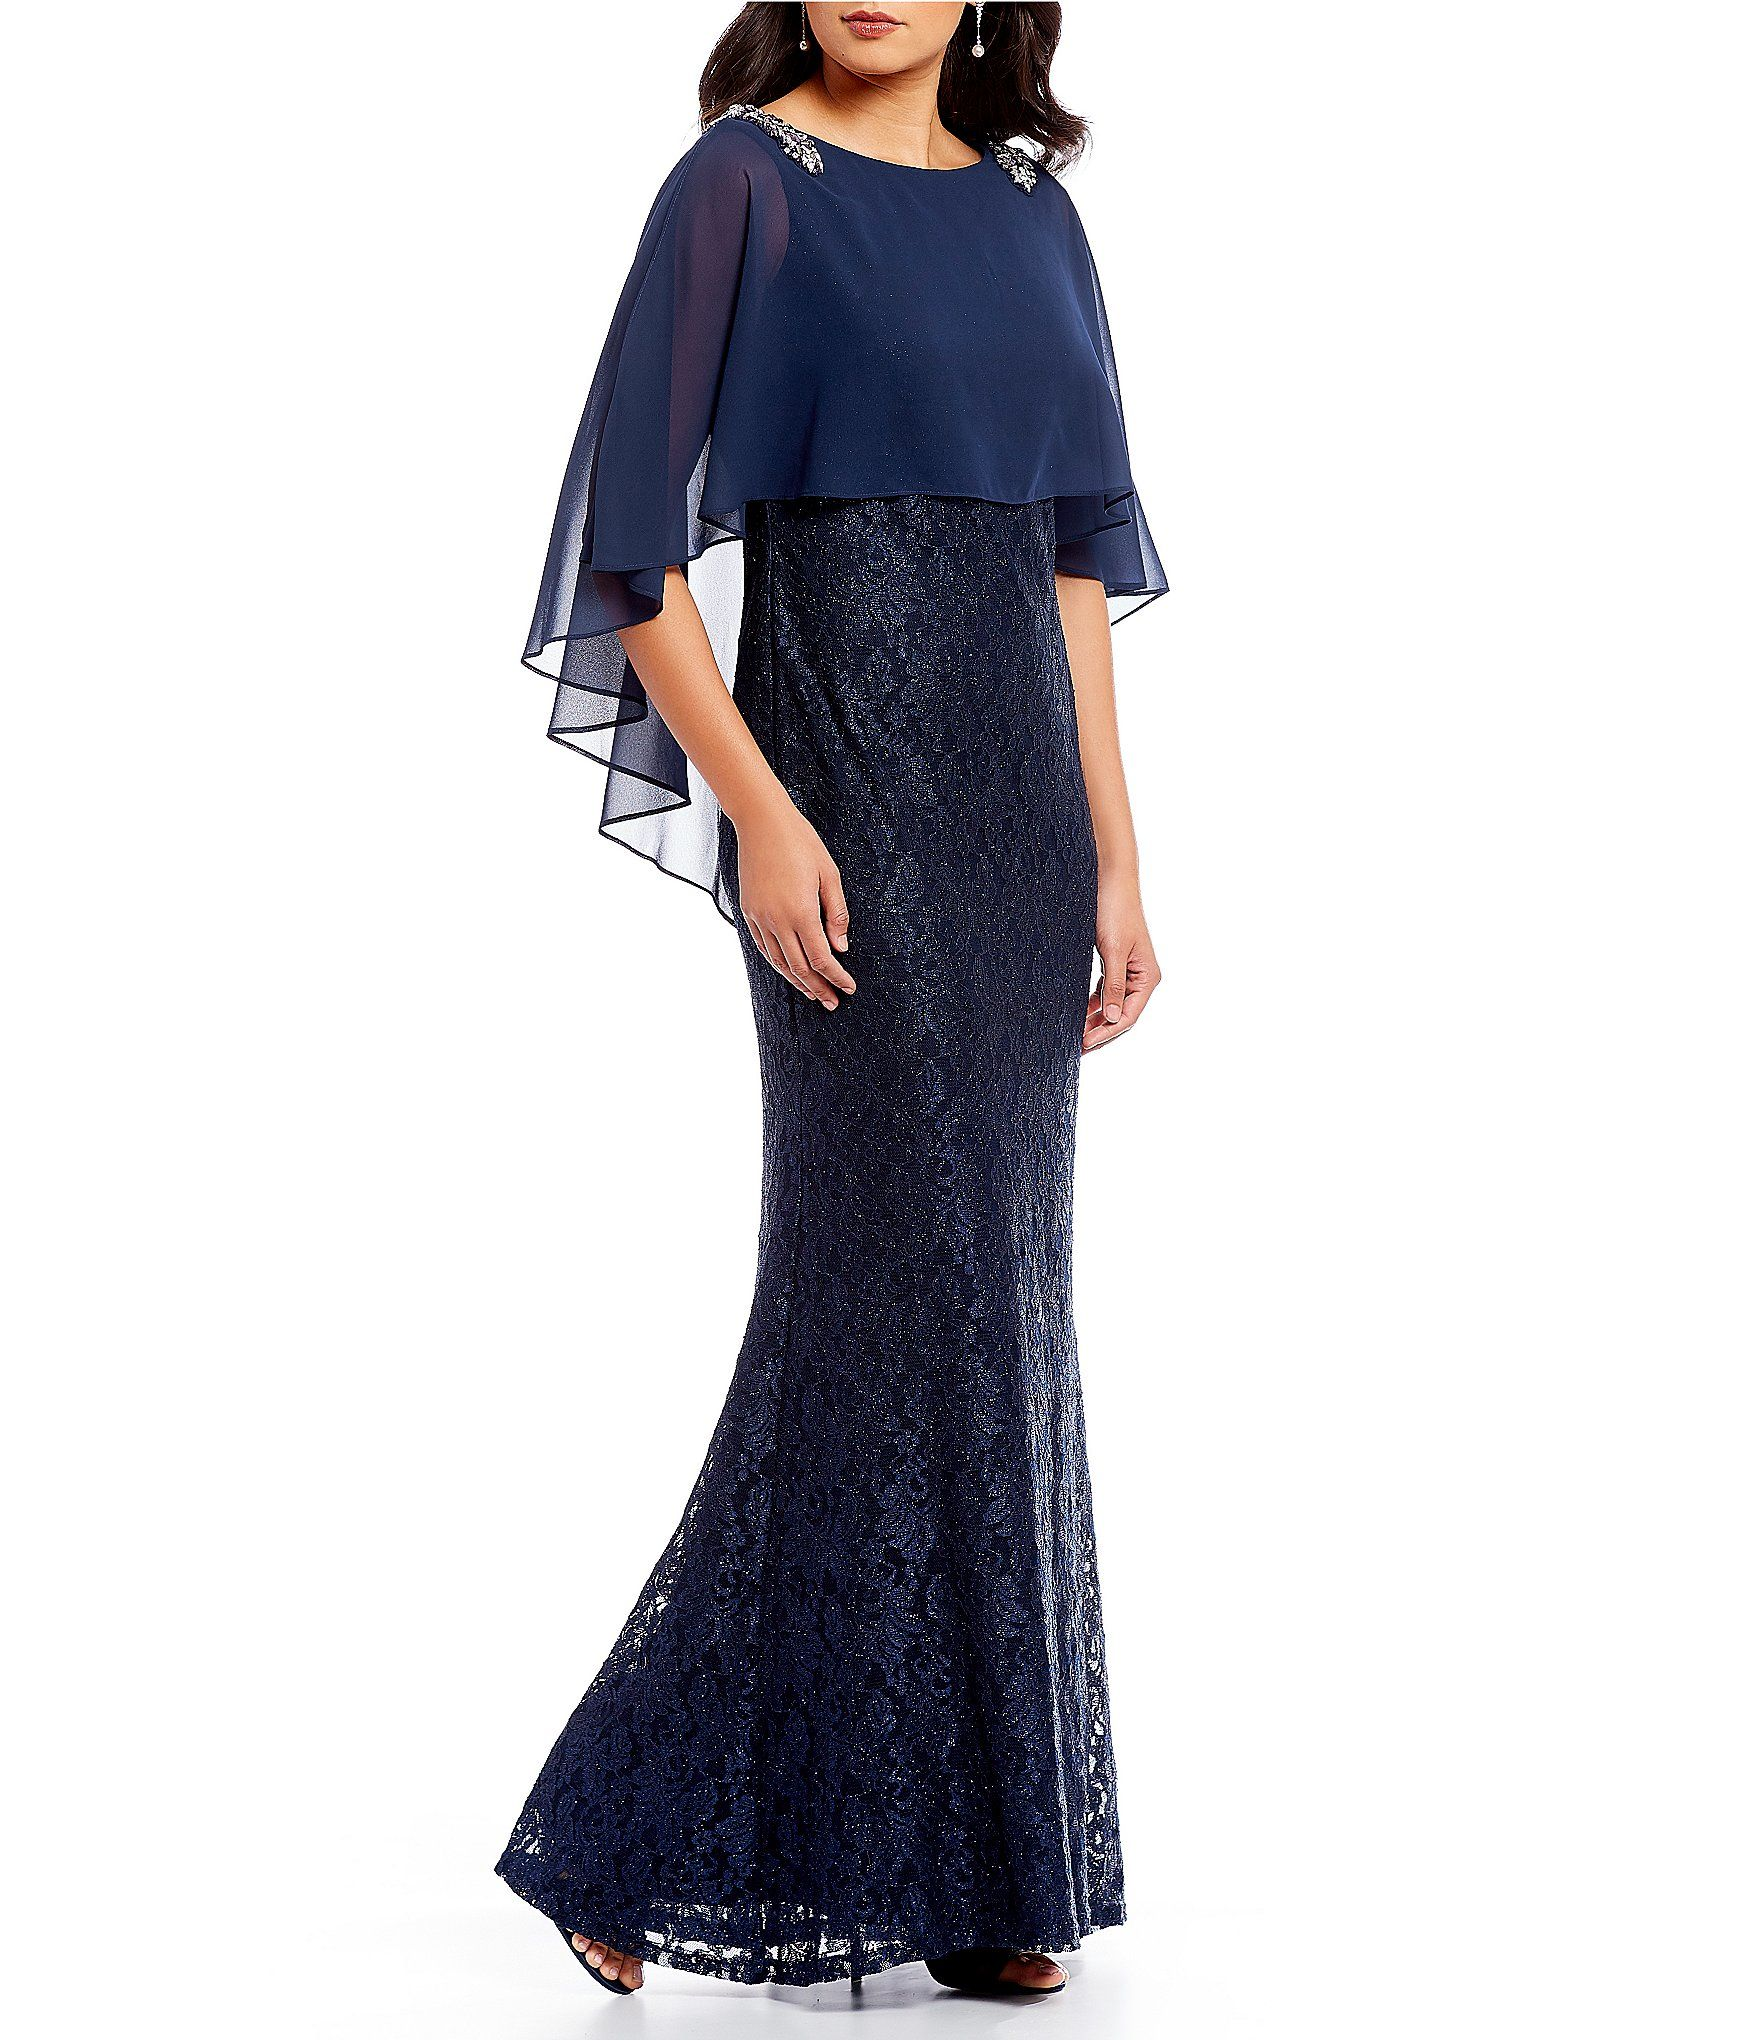 87cb3e96c8 Shop for Emma Street Glitter Lace Chiffon Embellished Cape Overlay Gown at  Dillards.com. Visit Dillards.com to find clothing